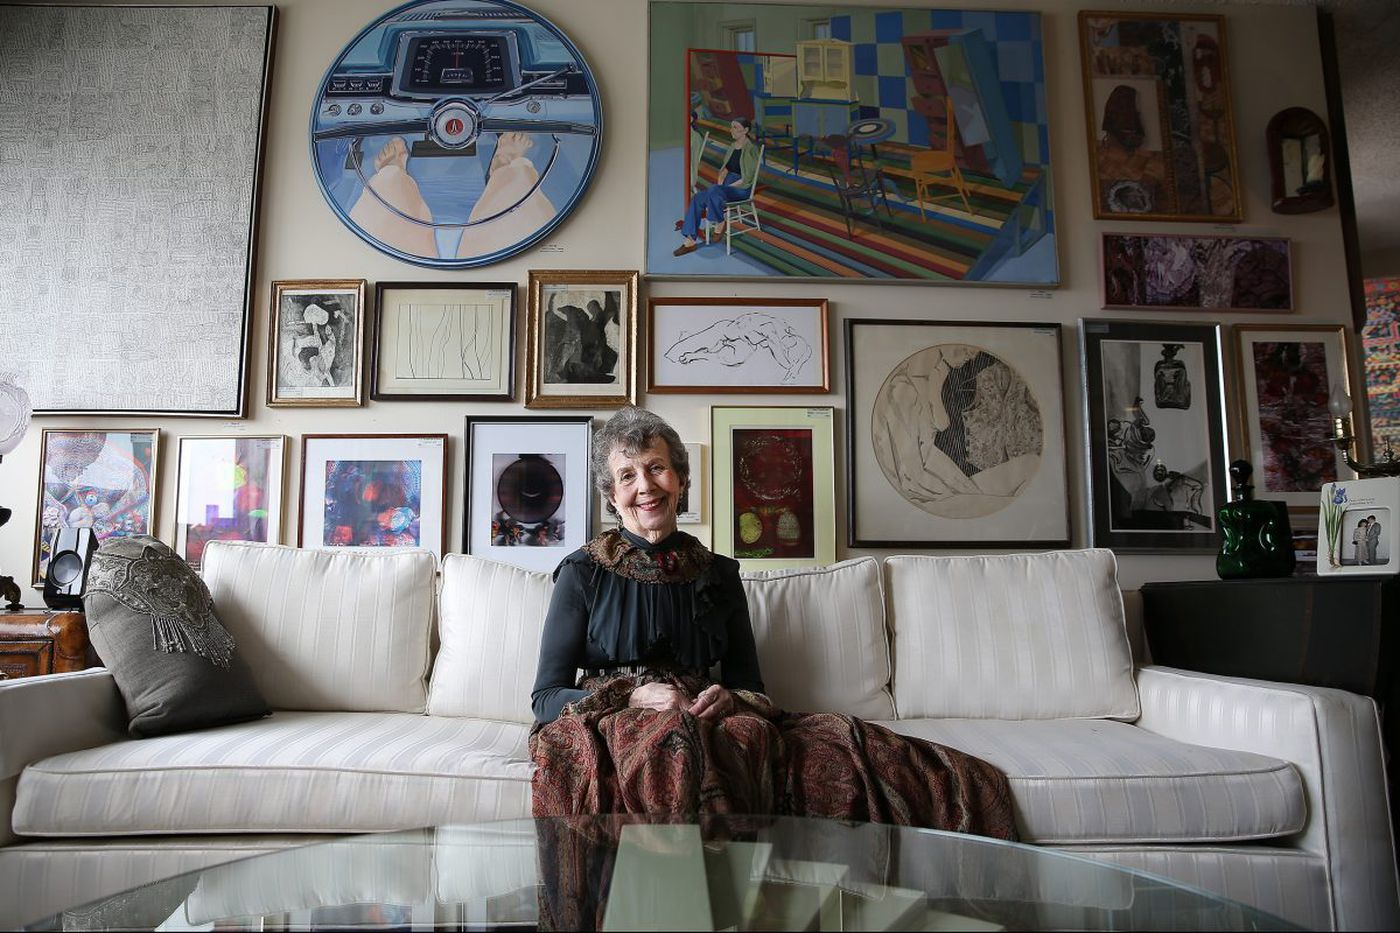 79-year-old artist made her home a gallery, and created a community